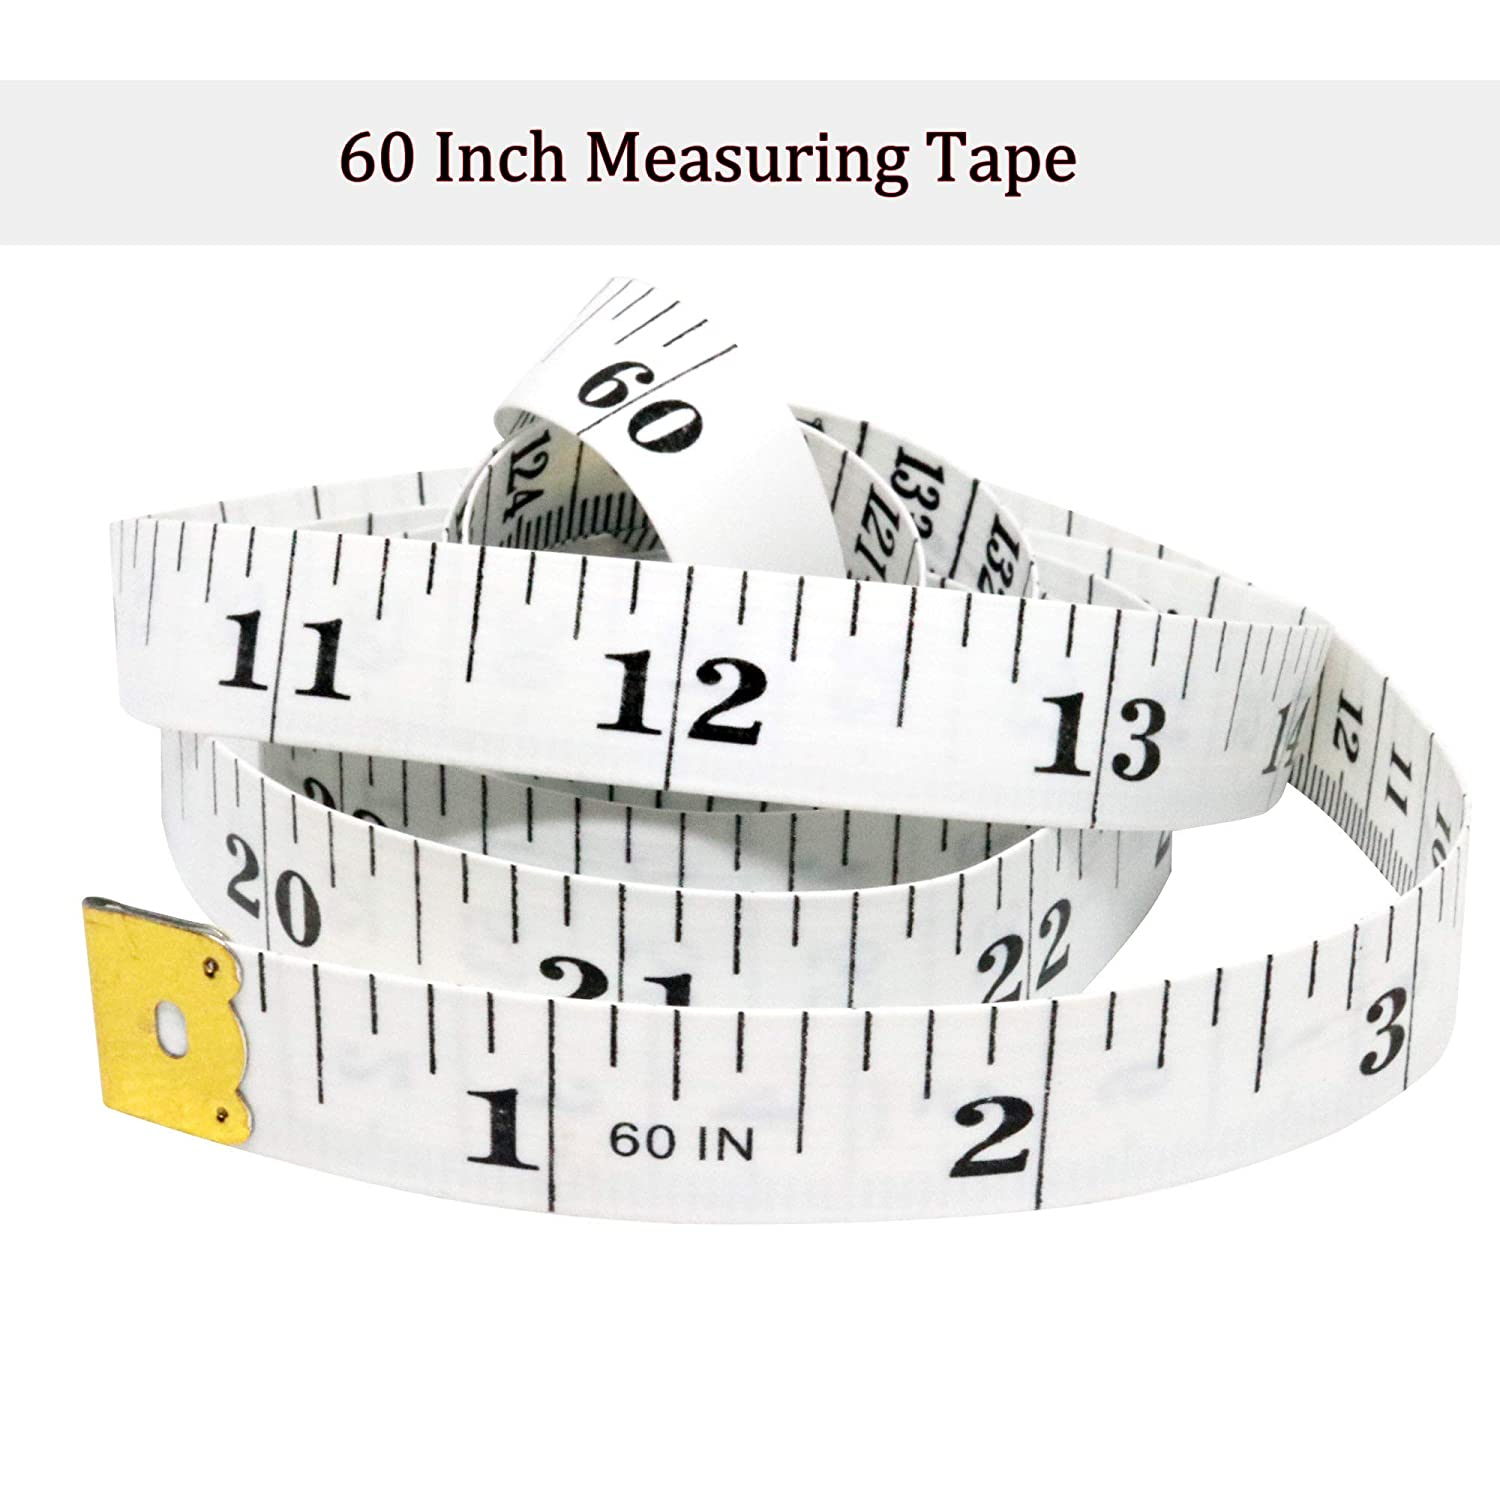 """60/"""" Measuring Tap for Body Cloth Sewing Flexible Tailor Measuring Tape 2PCS Sot Measuring Tape Centimeter and Inch Tape Measuring"""